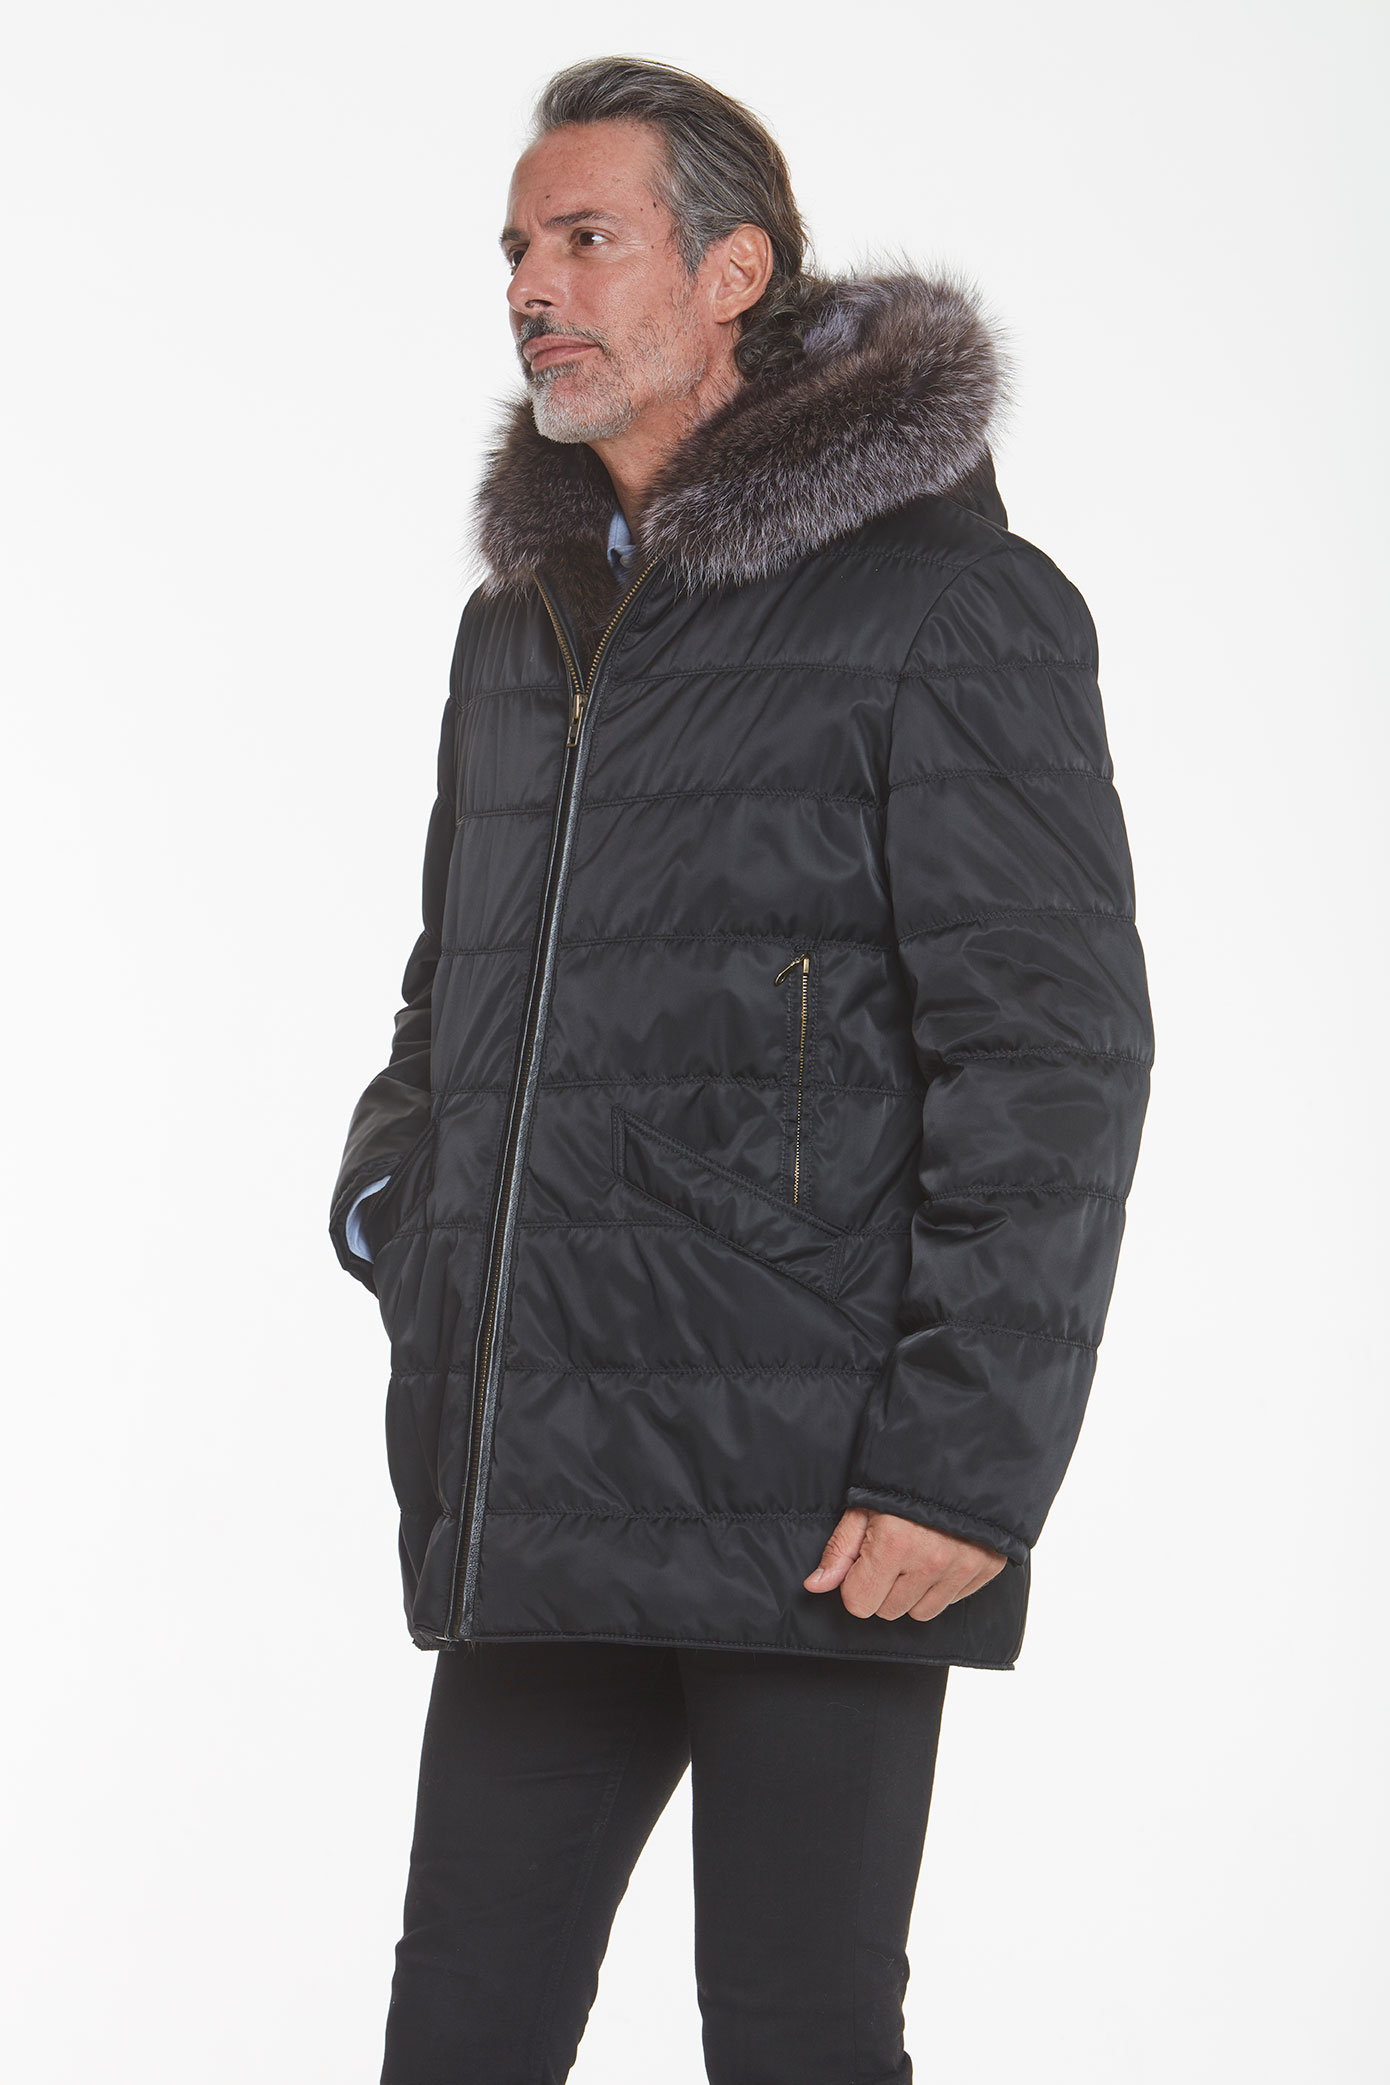 men's fur lined jacket